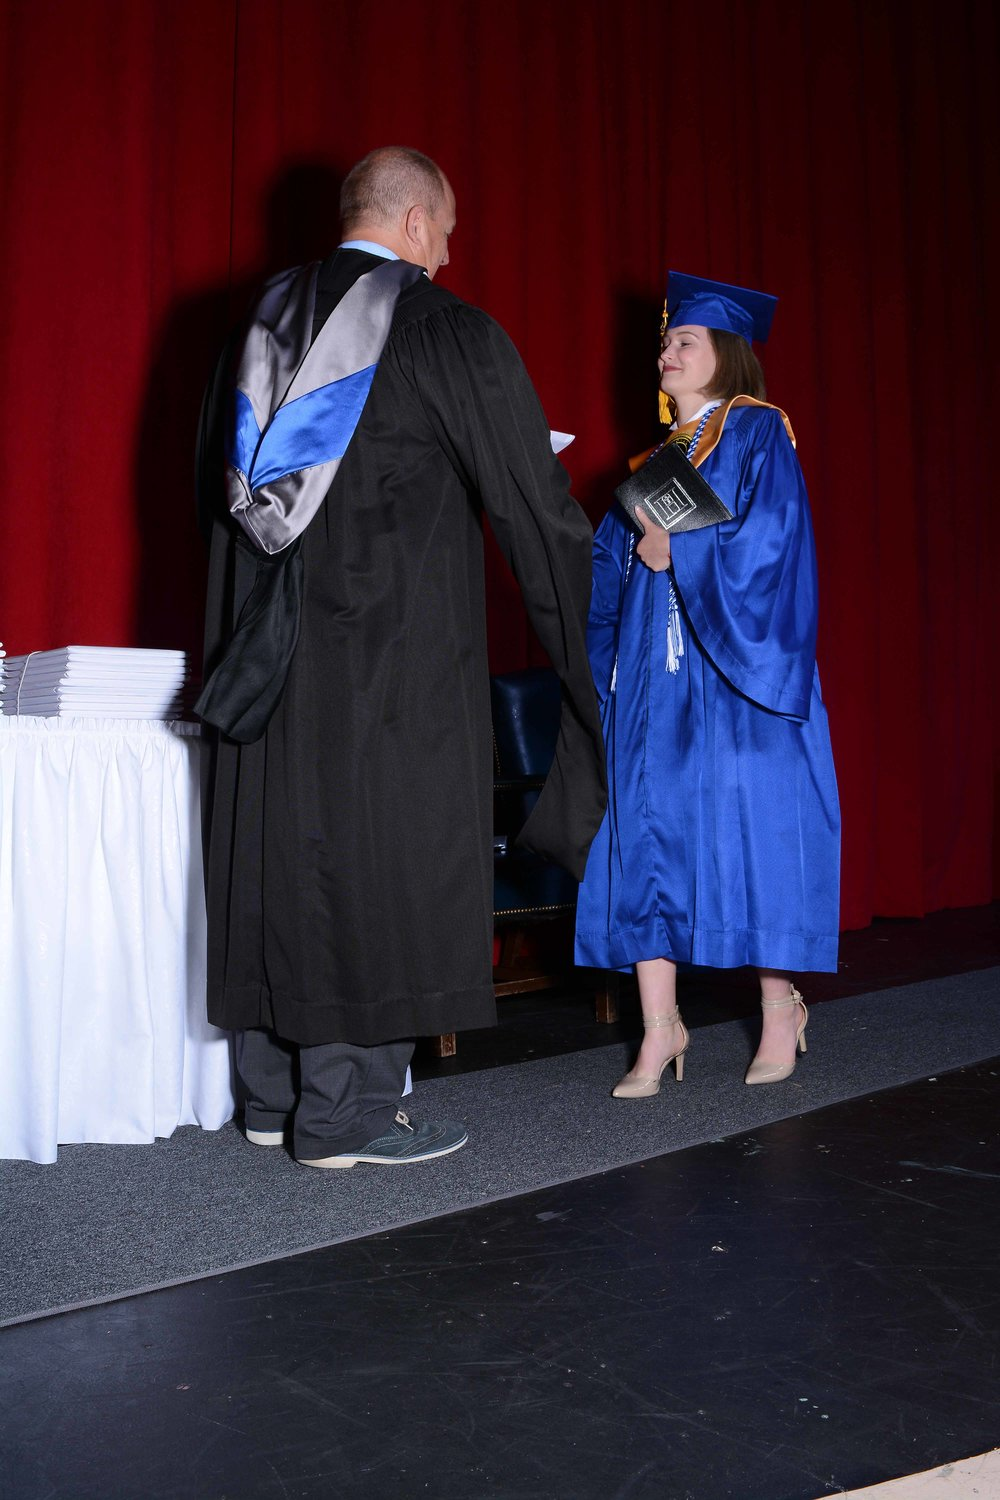 May14 Commencement72.jpg